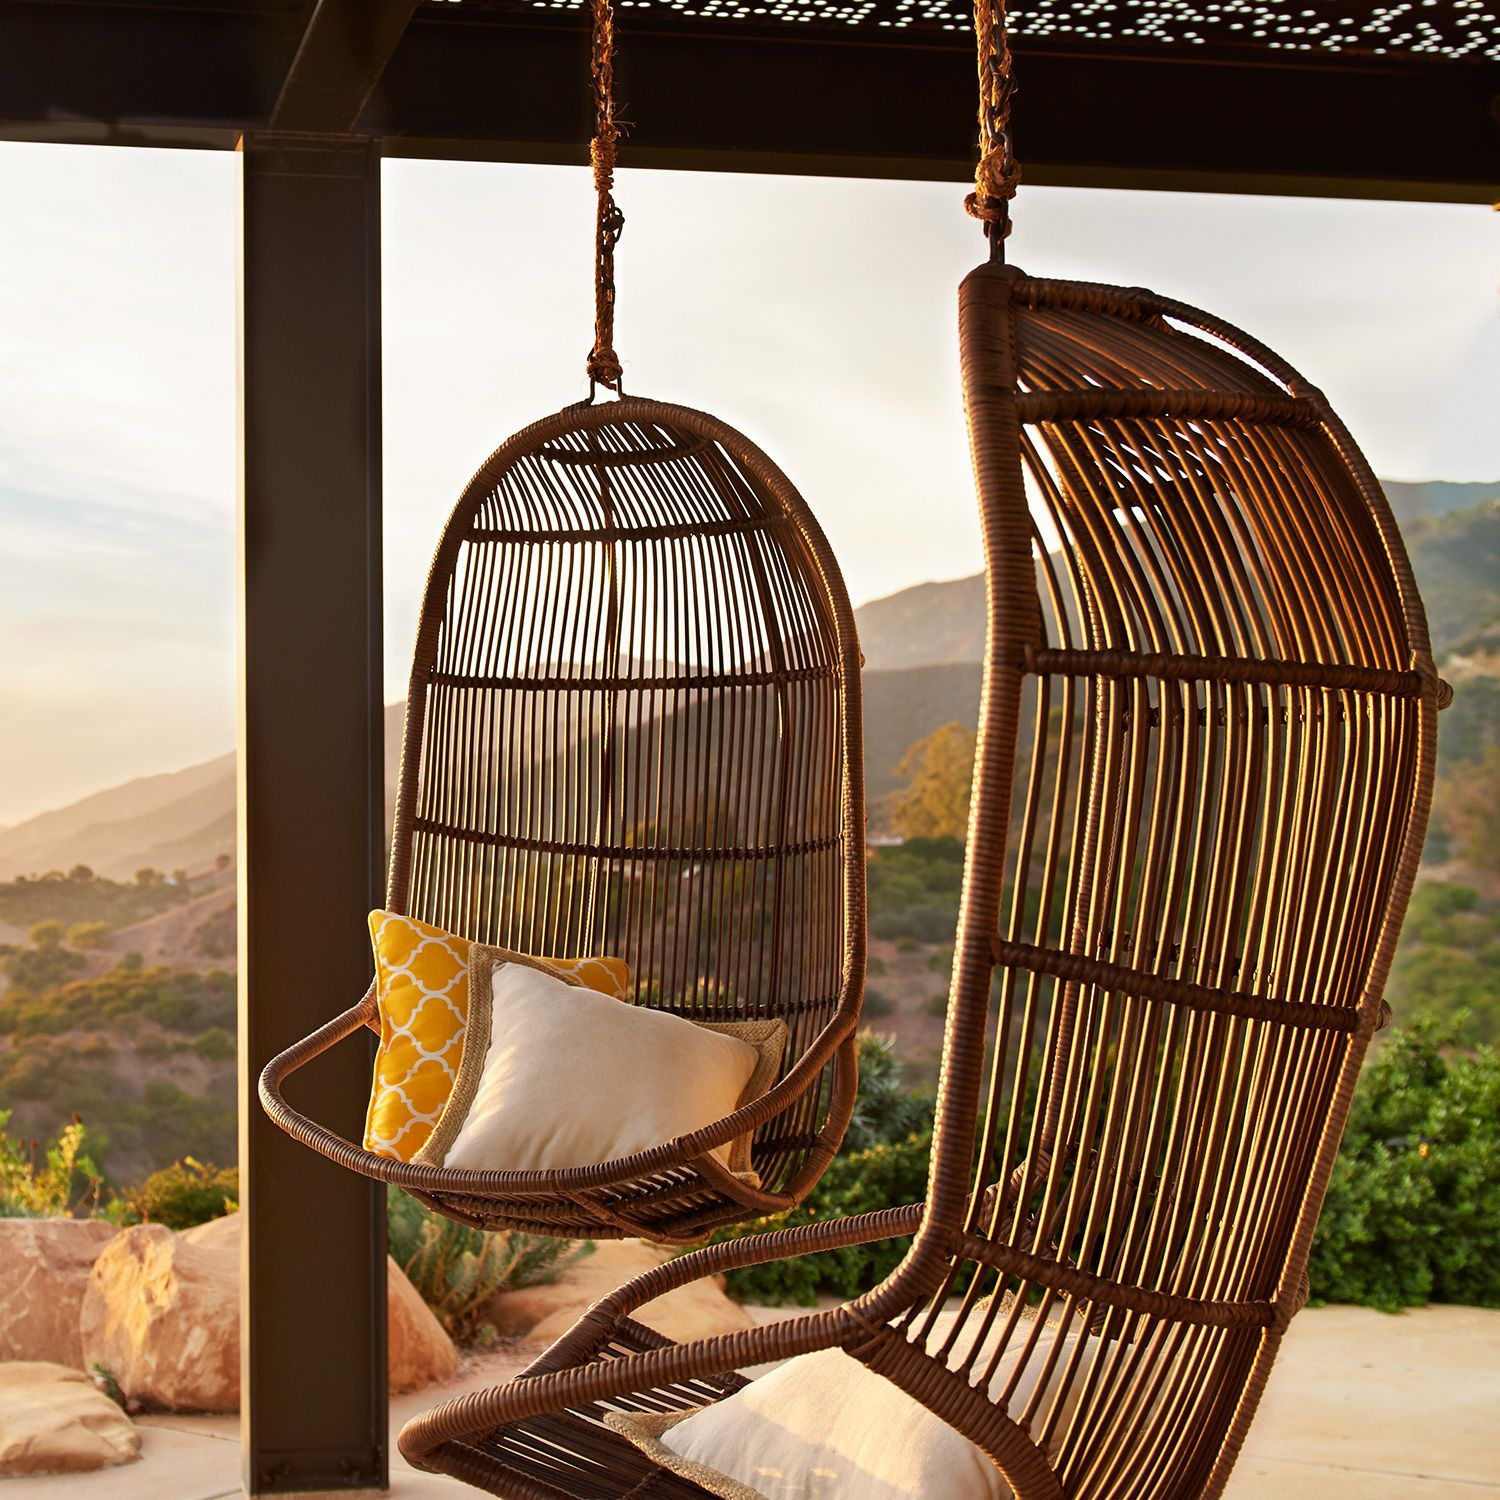 Pier 1 Swing Chair I Love And Would Love For Our Patio Deck Willow Swingasan